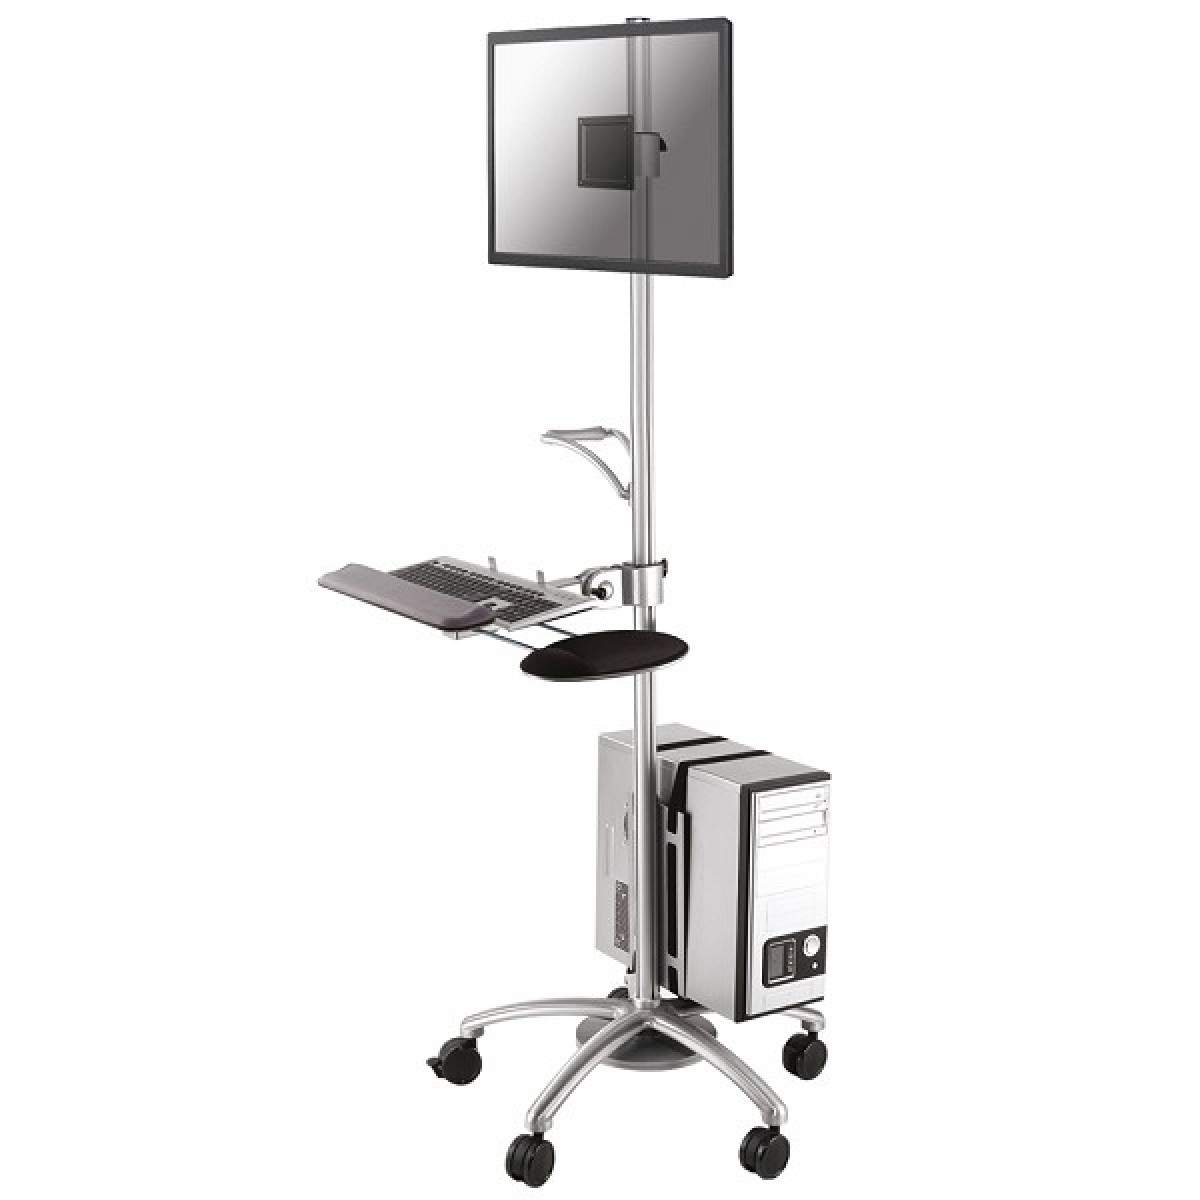 Newstar Mobile Workplace Floor Stand Trolley 10 27 Quot 1